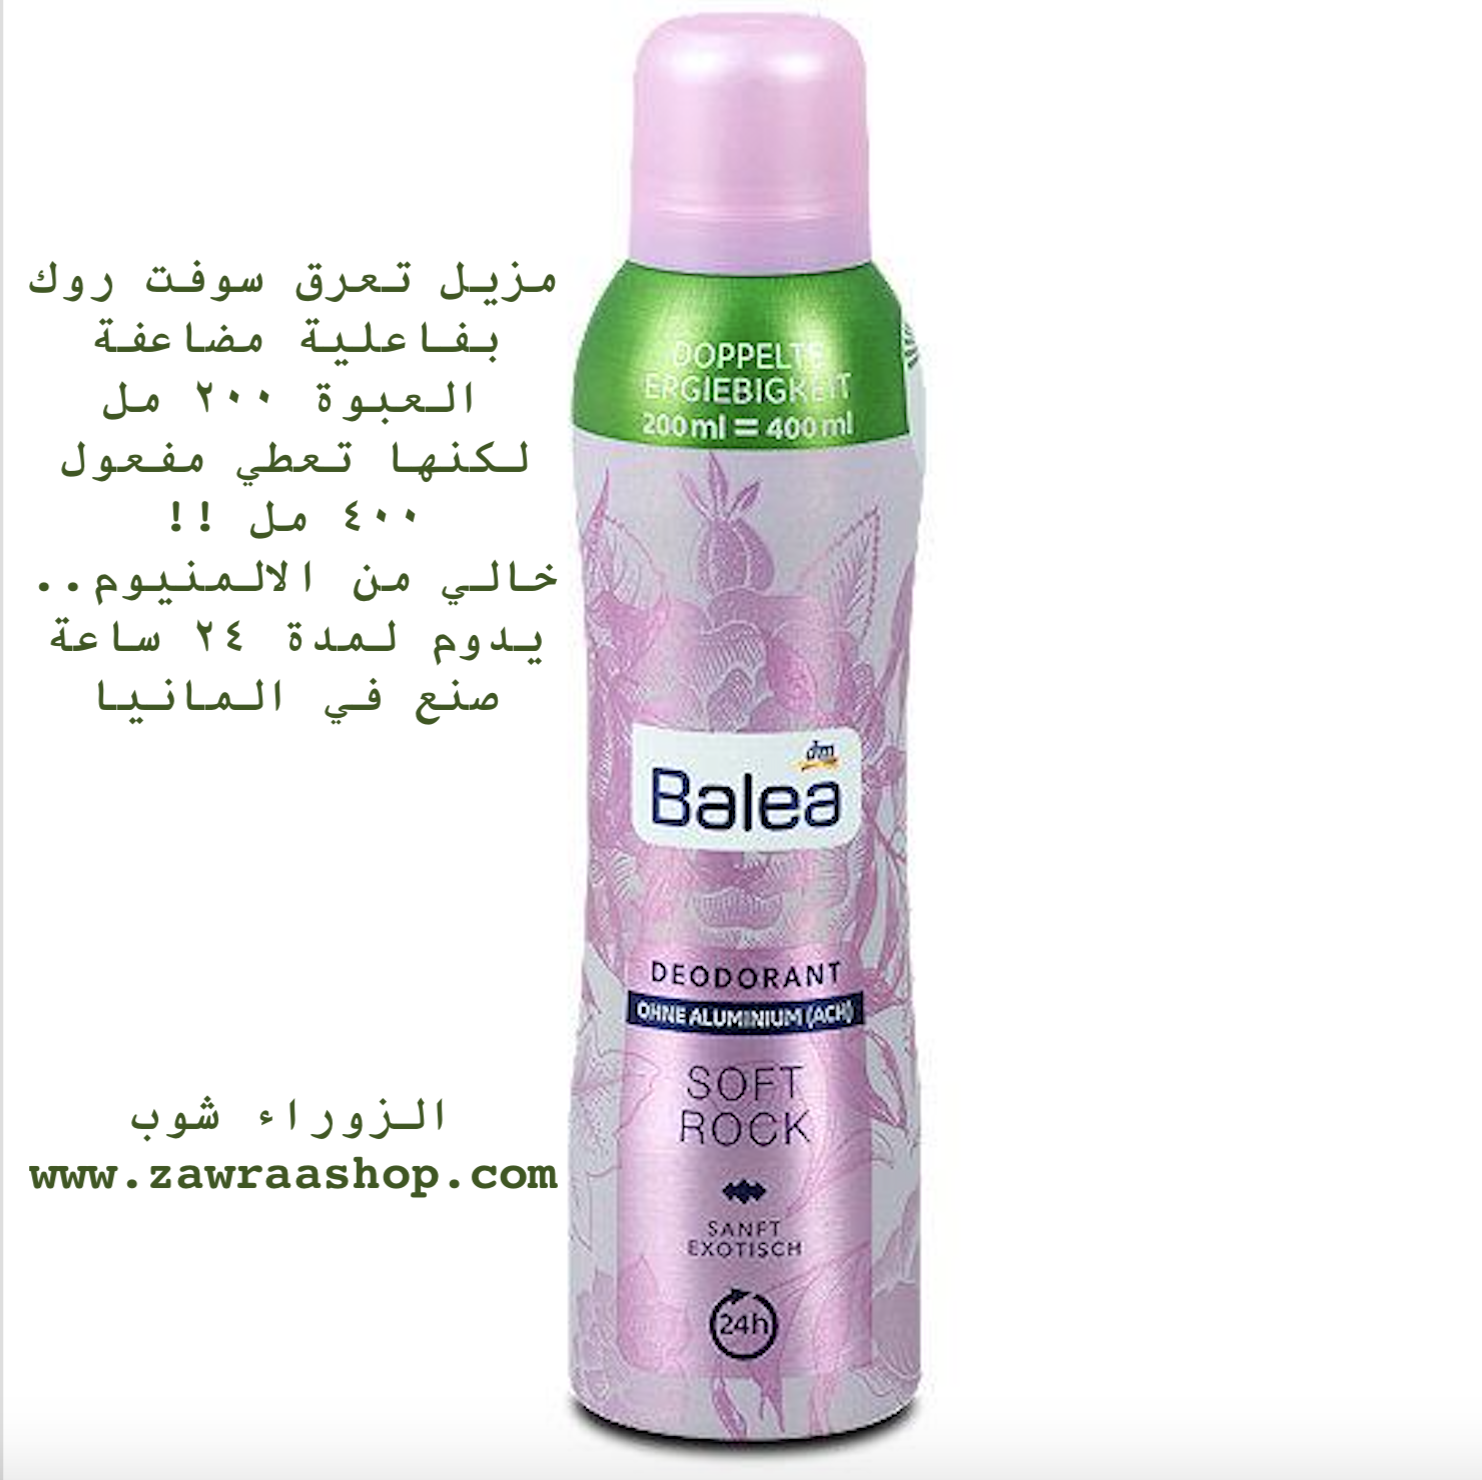 B101 Soft Rock Deodorant 24 H with out AL 200ml معطر سوفت روك